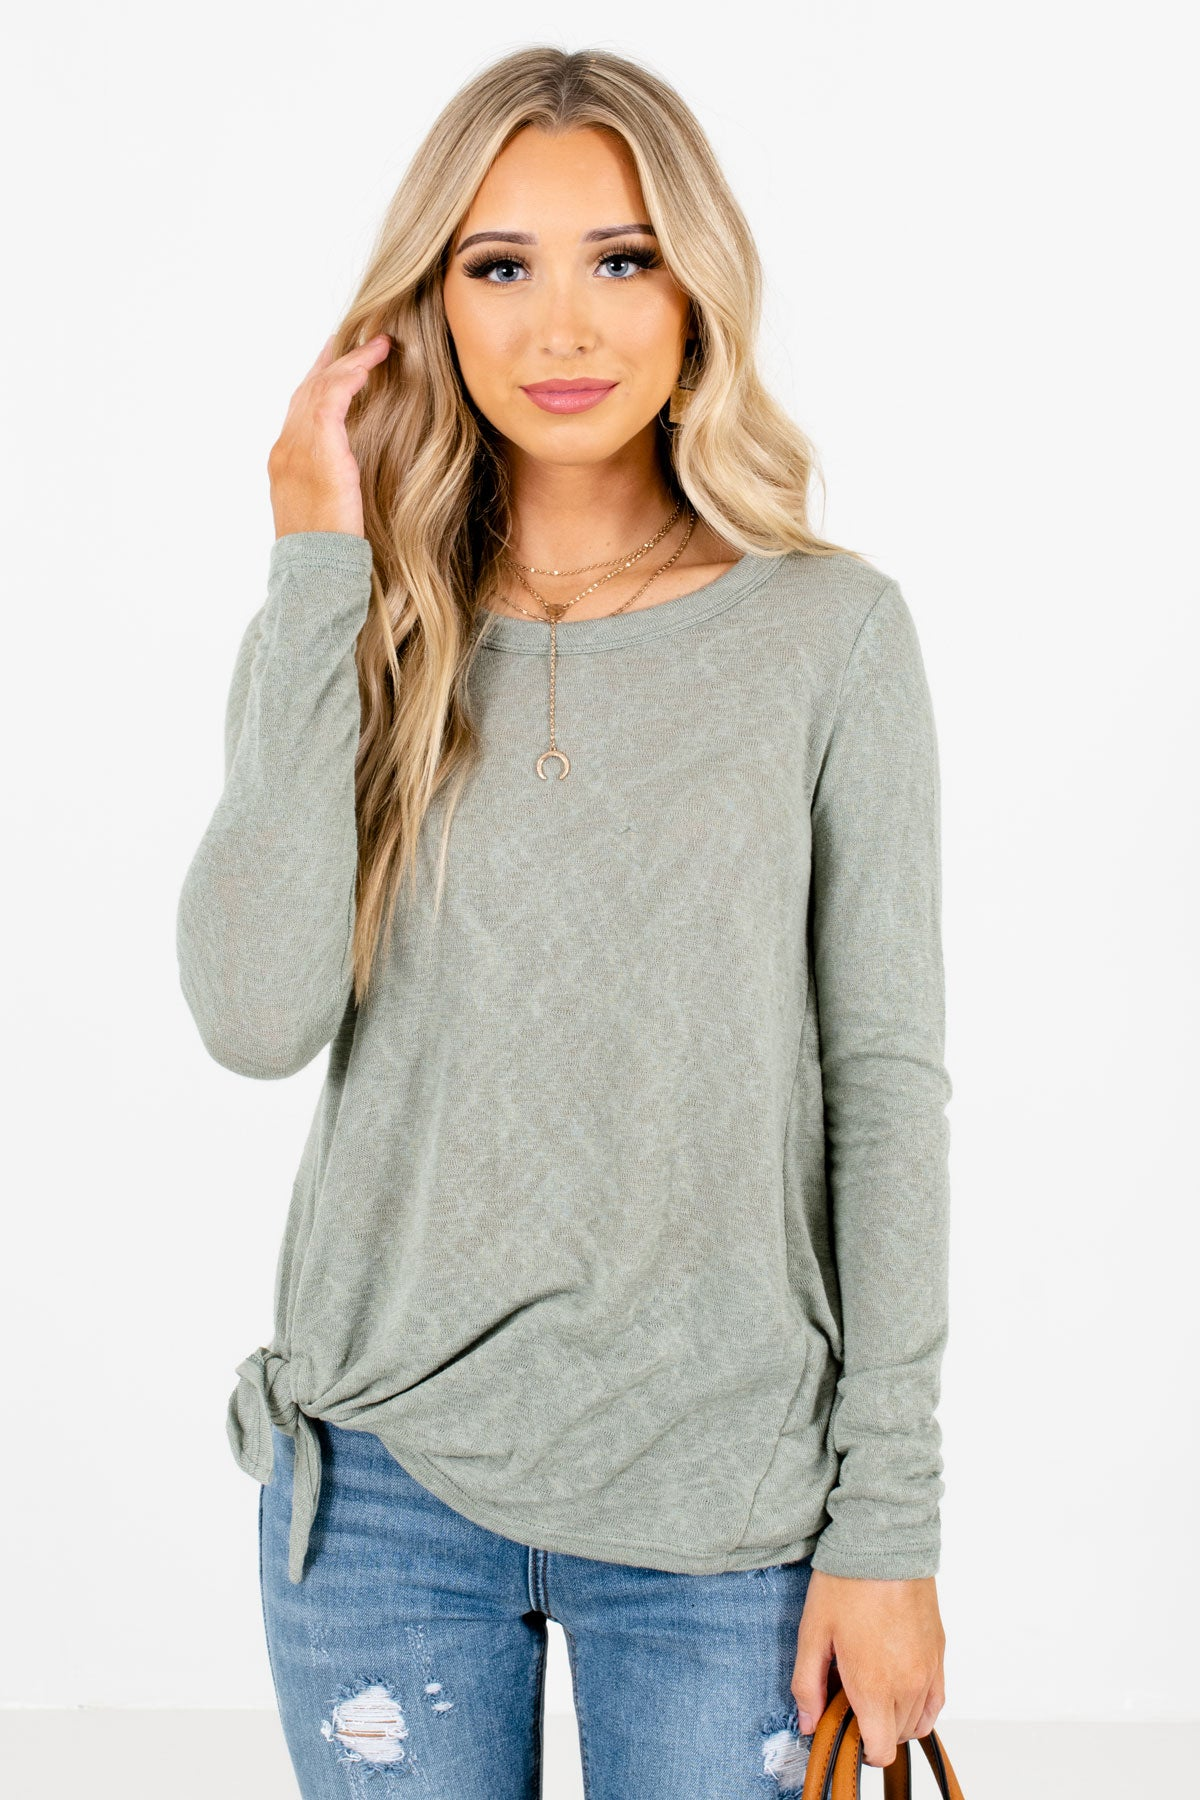 Sage Green Self-Tie Knot Detailed Boutique Tops for Women